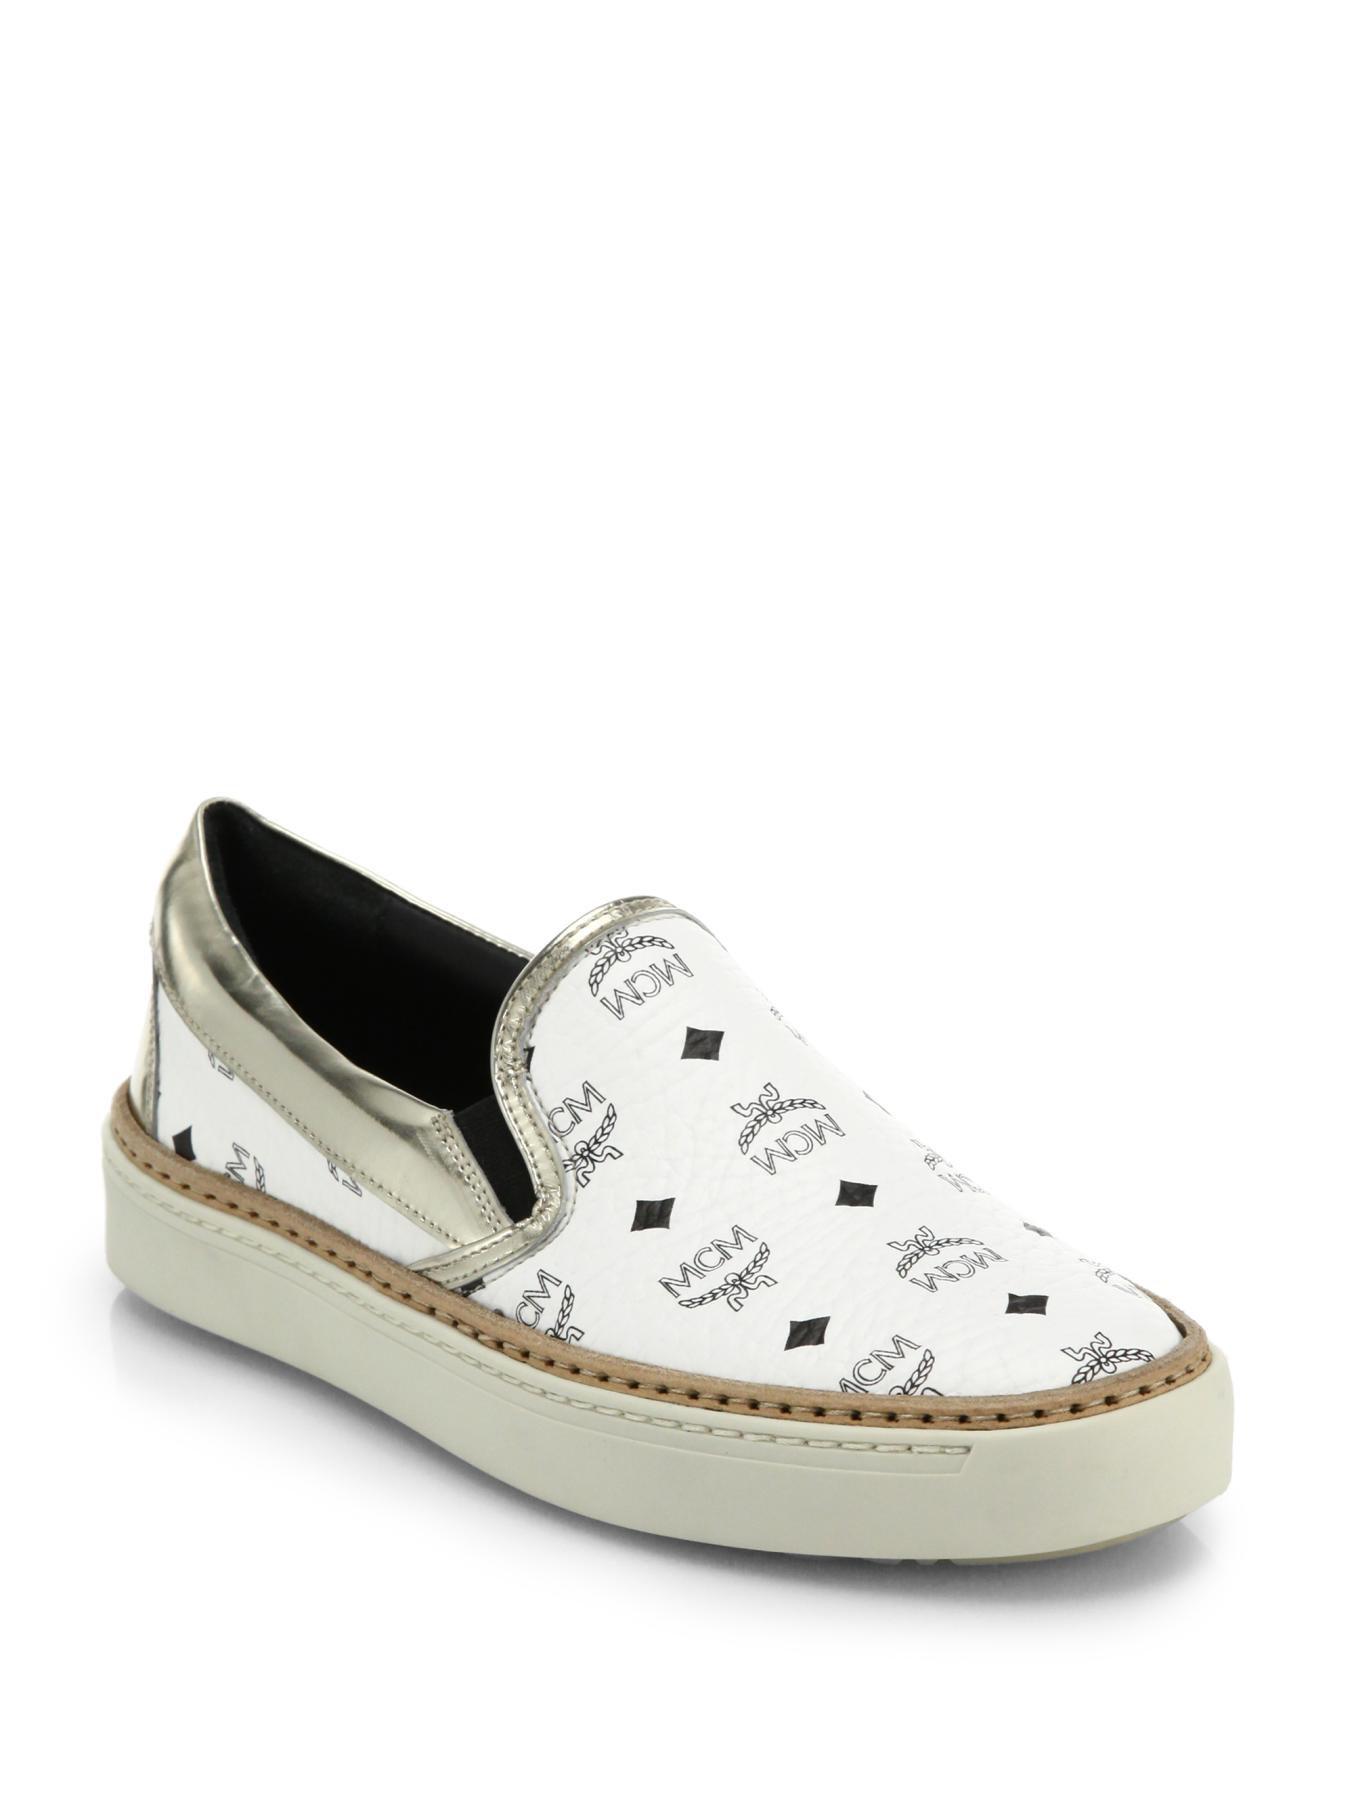 Mcm Visetos Logo Print Leather Slip On Sneakers In White